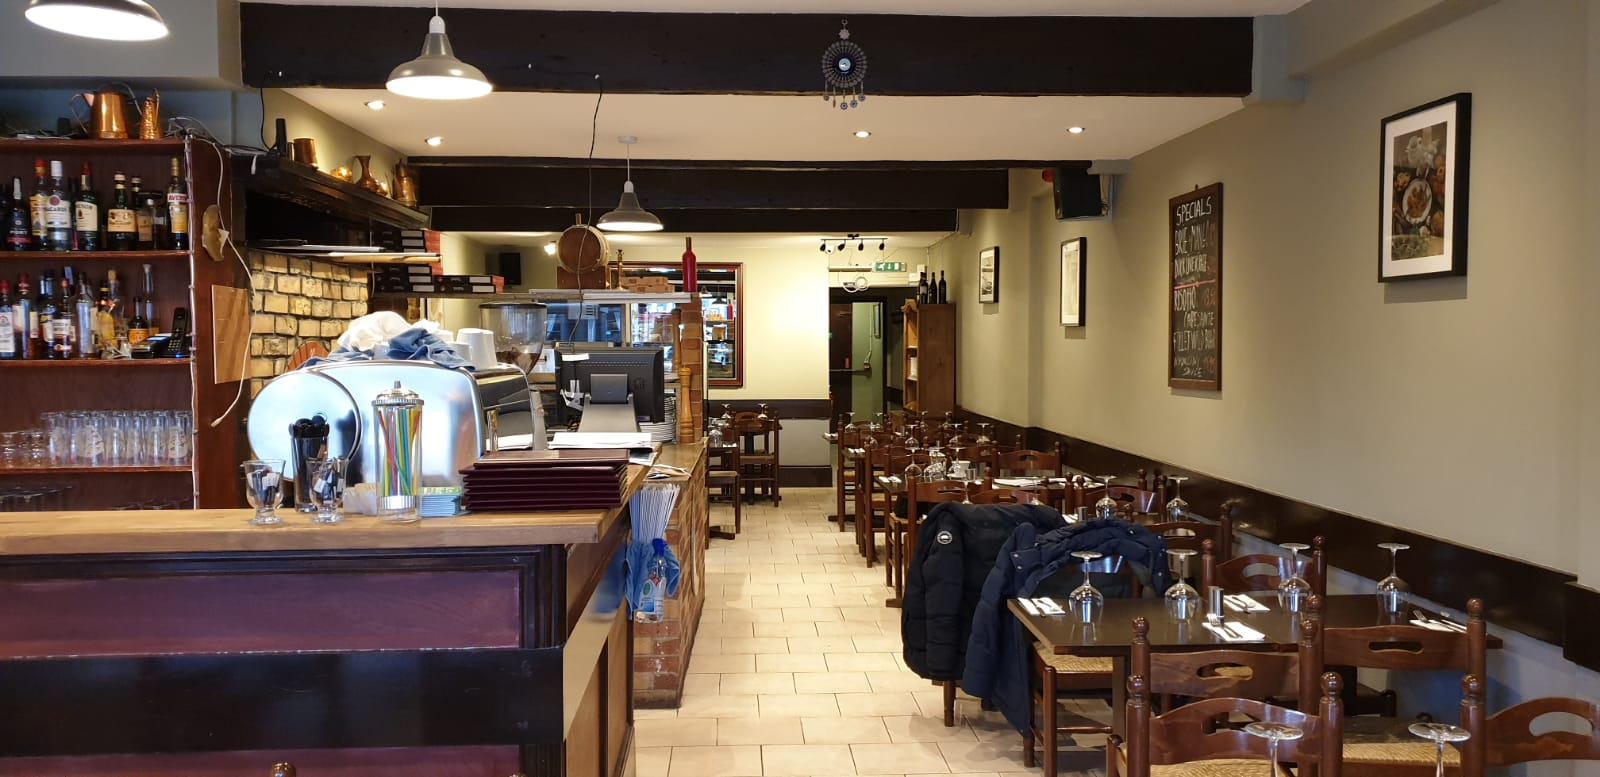 COSY ITALIAN RESTAURANT, SOUTH EAST LONDON